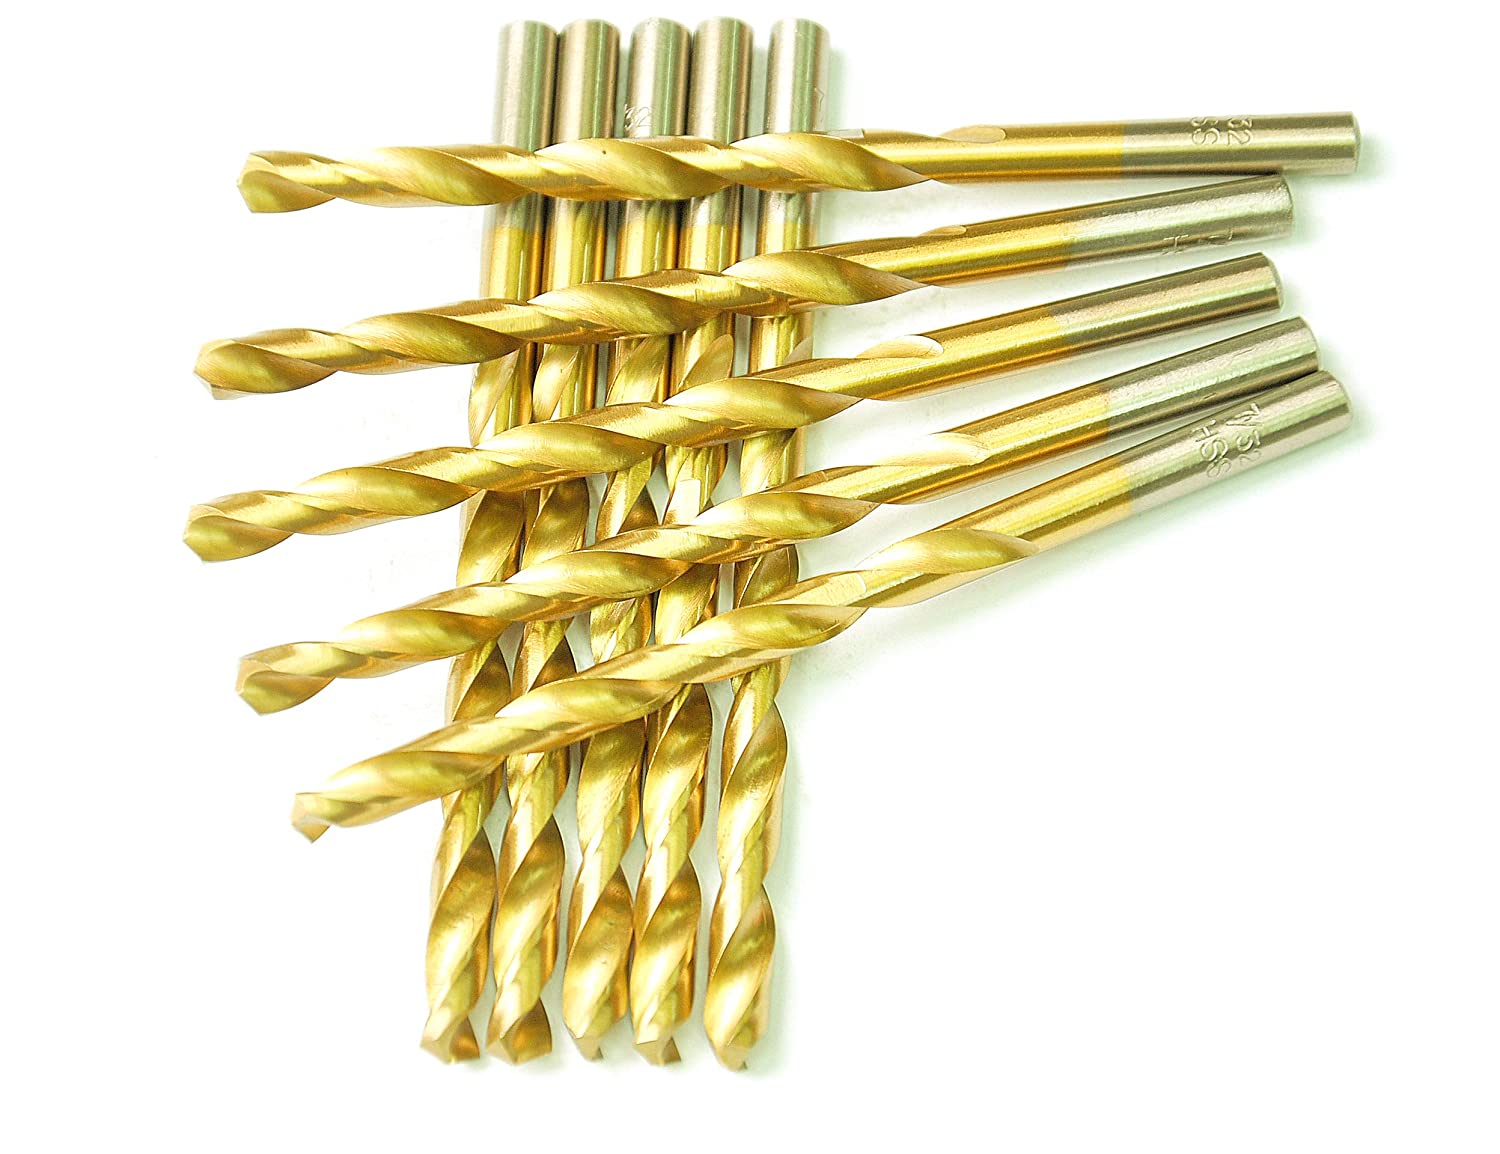 DRILLFORCE HSS Jobber Length 10 PCS,1/4' x 4'Titanium Coated Twist Drill Bits, Metal drill, ideal for drilling on mild steel, copper, Aluminum, Zinc alloy etc. Pack In Plastic Bag (1/4) 1/4 x 4Titanium Coated Twist Drill Bits